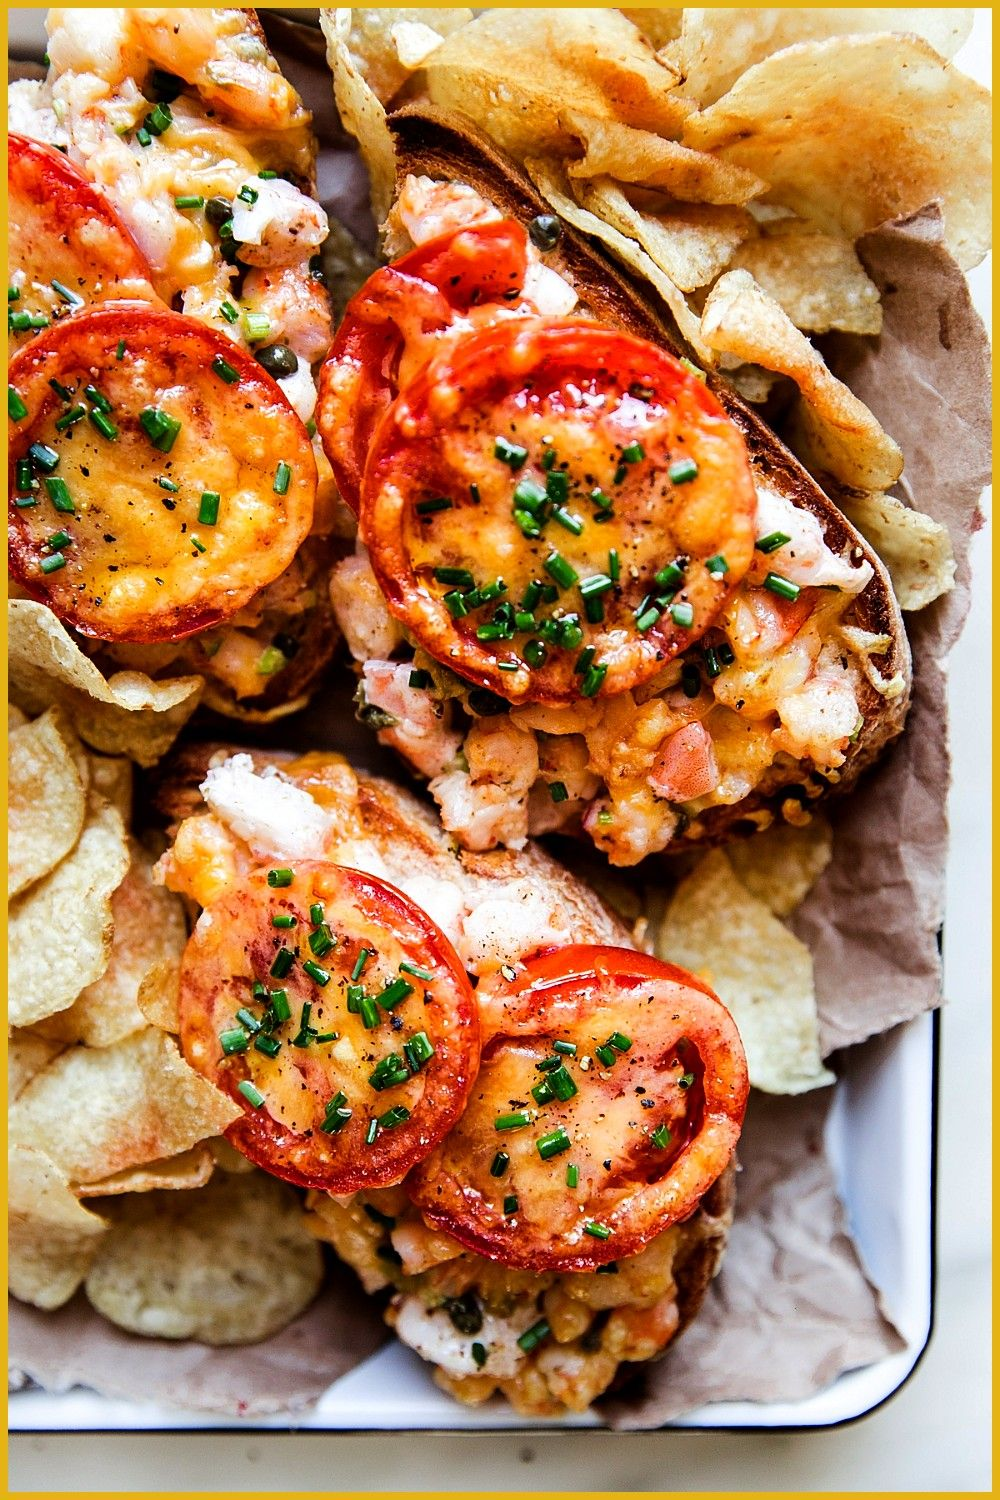 Melt with Capers and Old Bay Seasoning pescatarianrecipes Shrimp Melt with Capers and Old Bay Seasoning by The Modern Proper Shrimp Melt with Capers and Old Bay Seasoning...